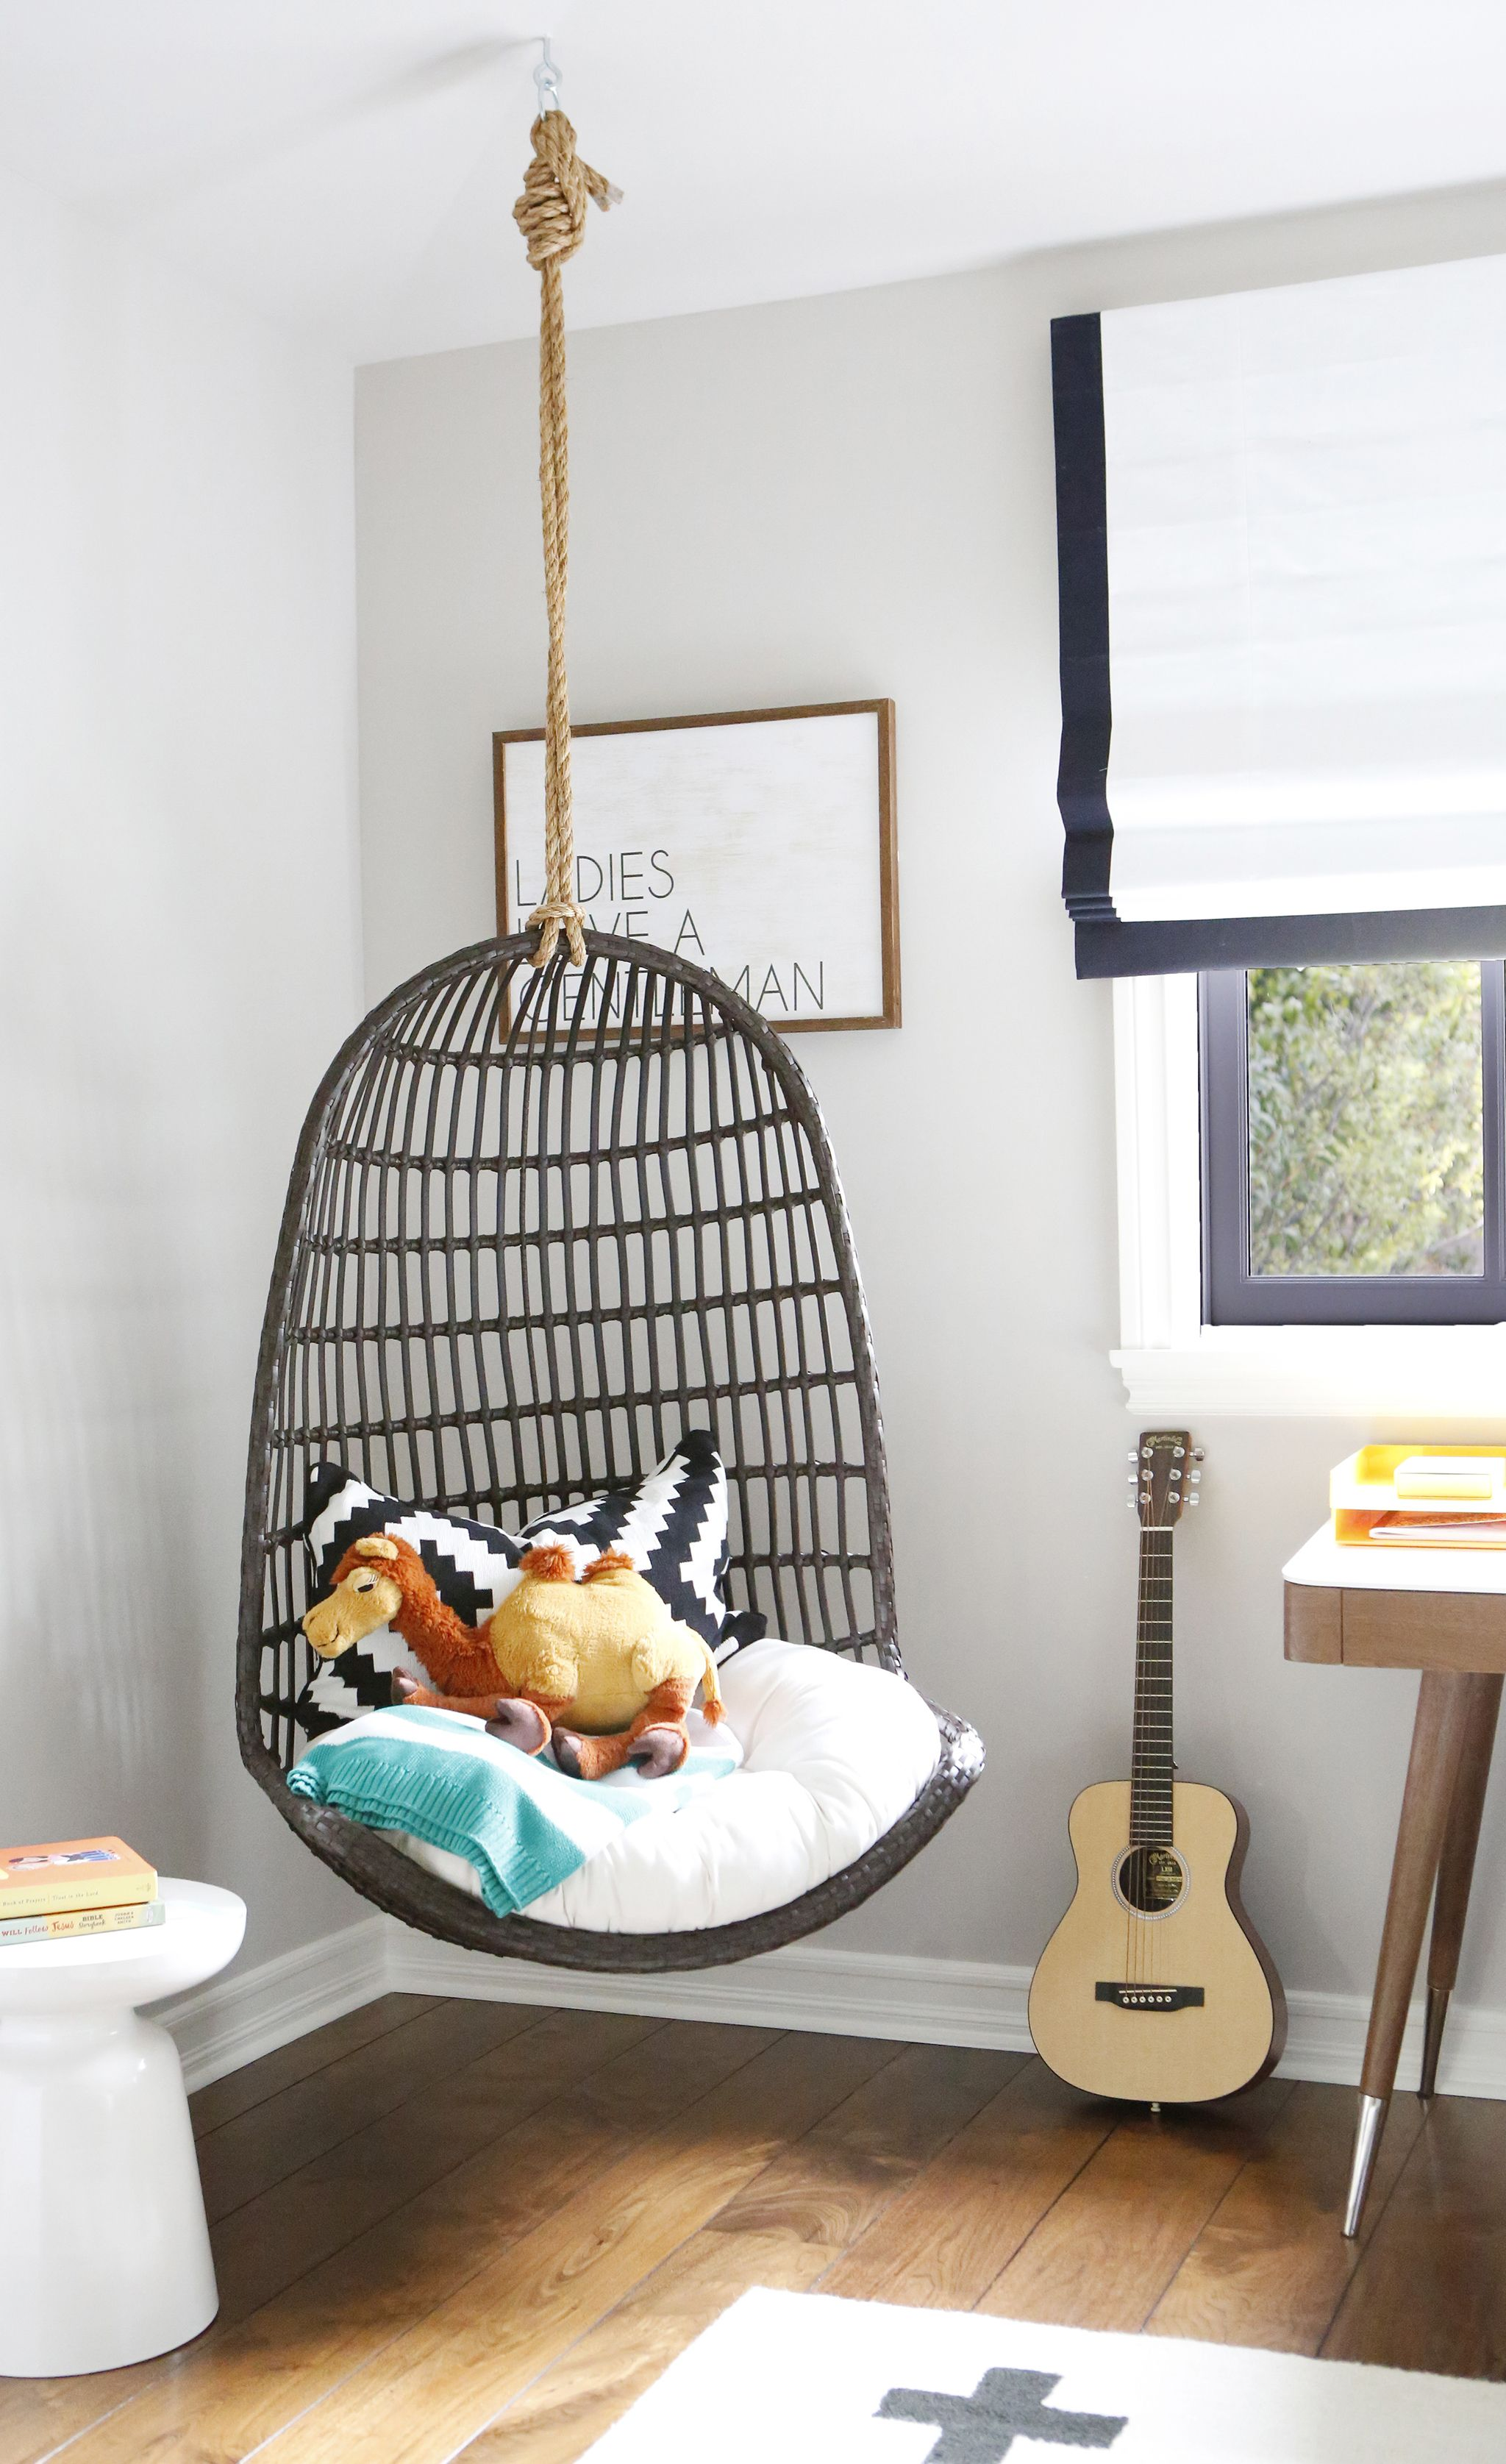 Trendspotting Hanging Chairs Are Swinging Into Kids Design Big